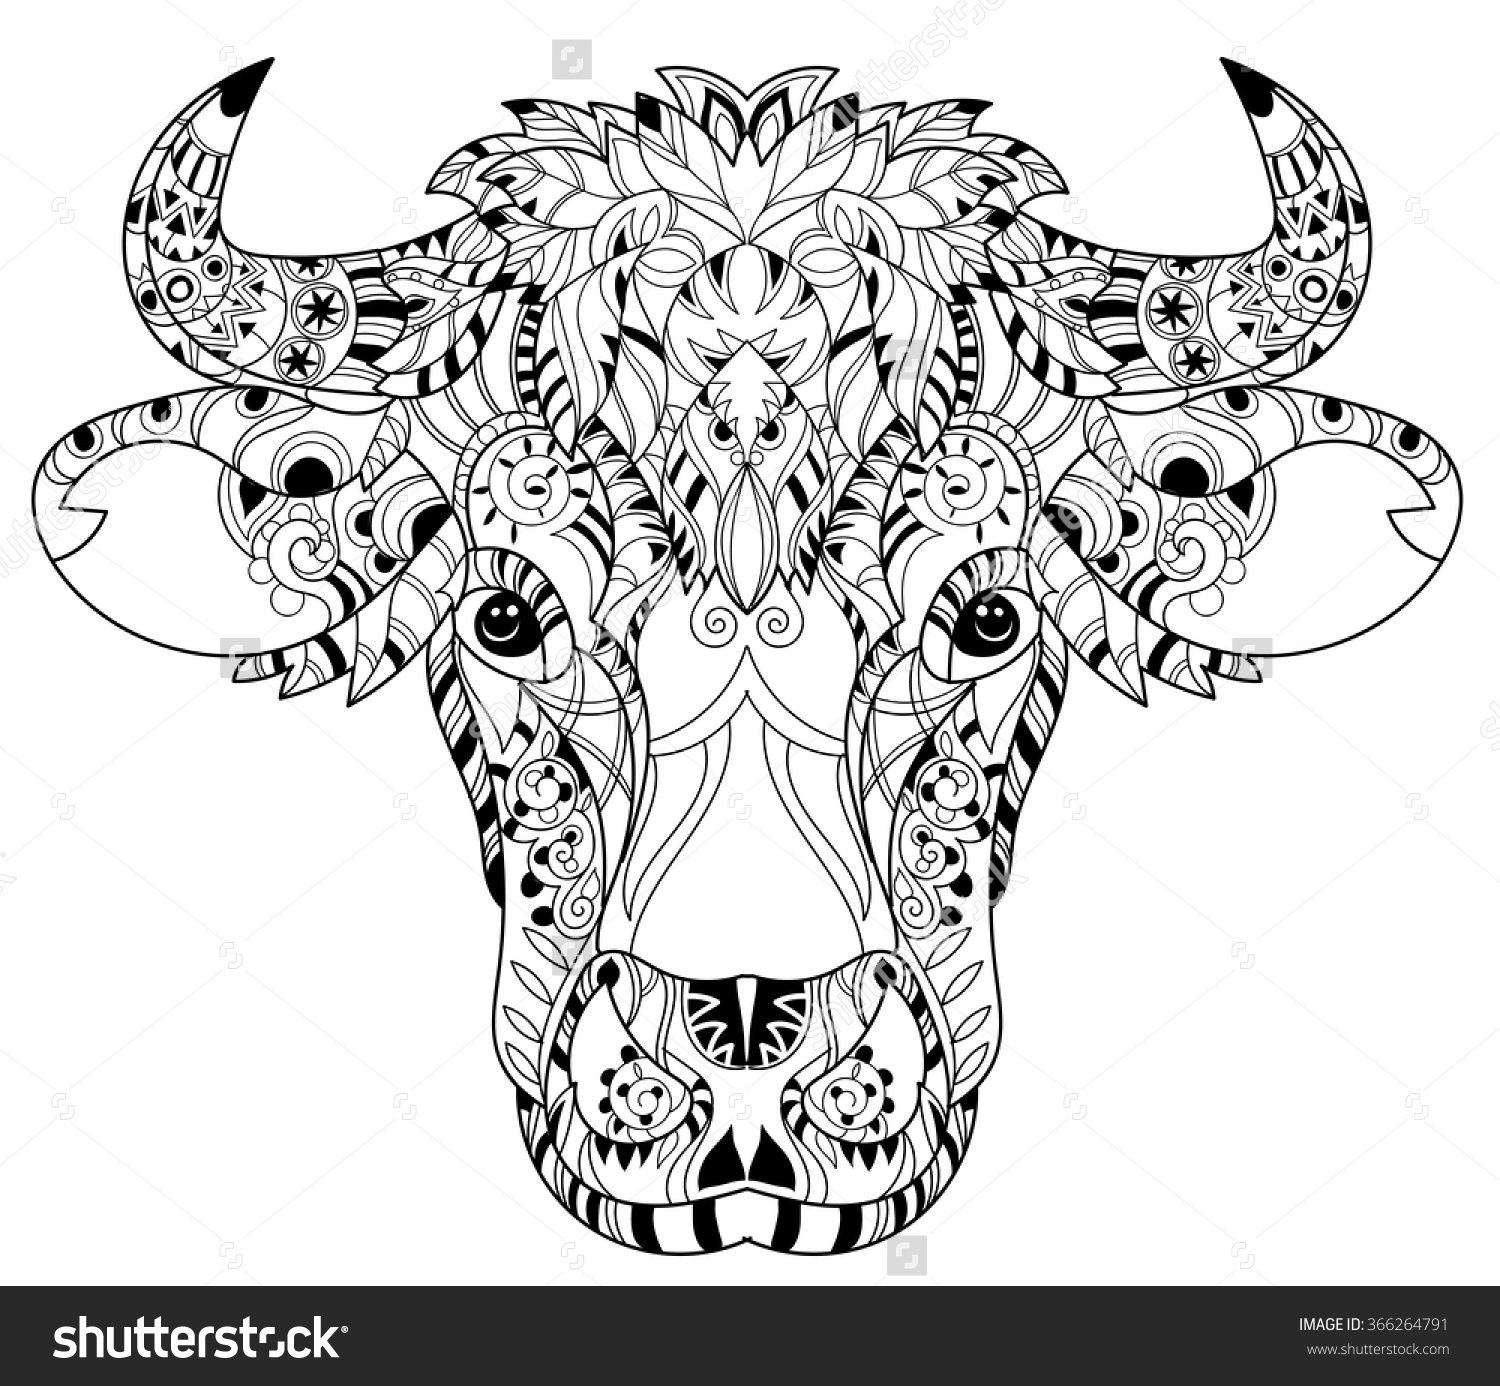 decorated cow heads - Google Search